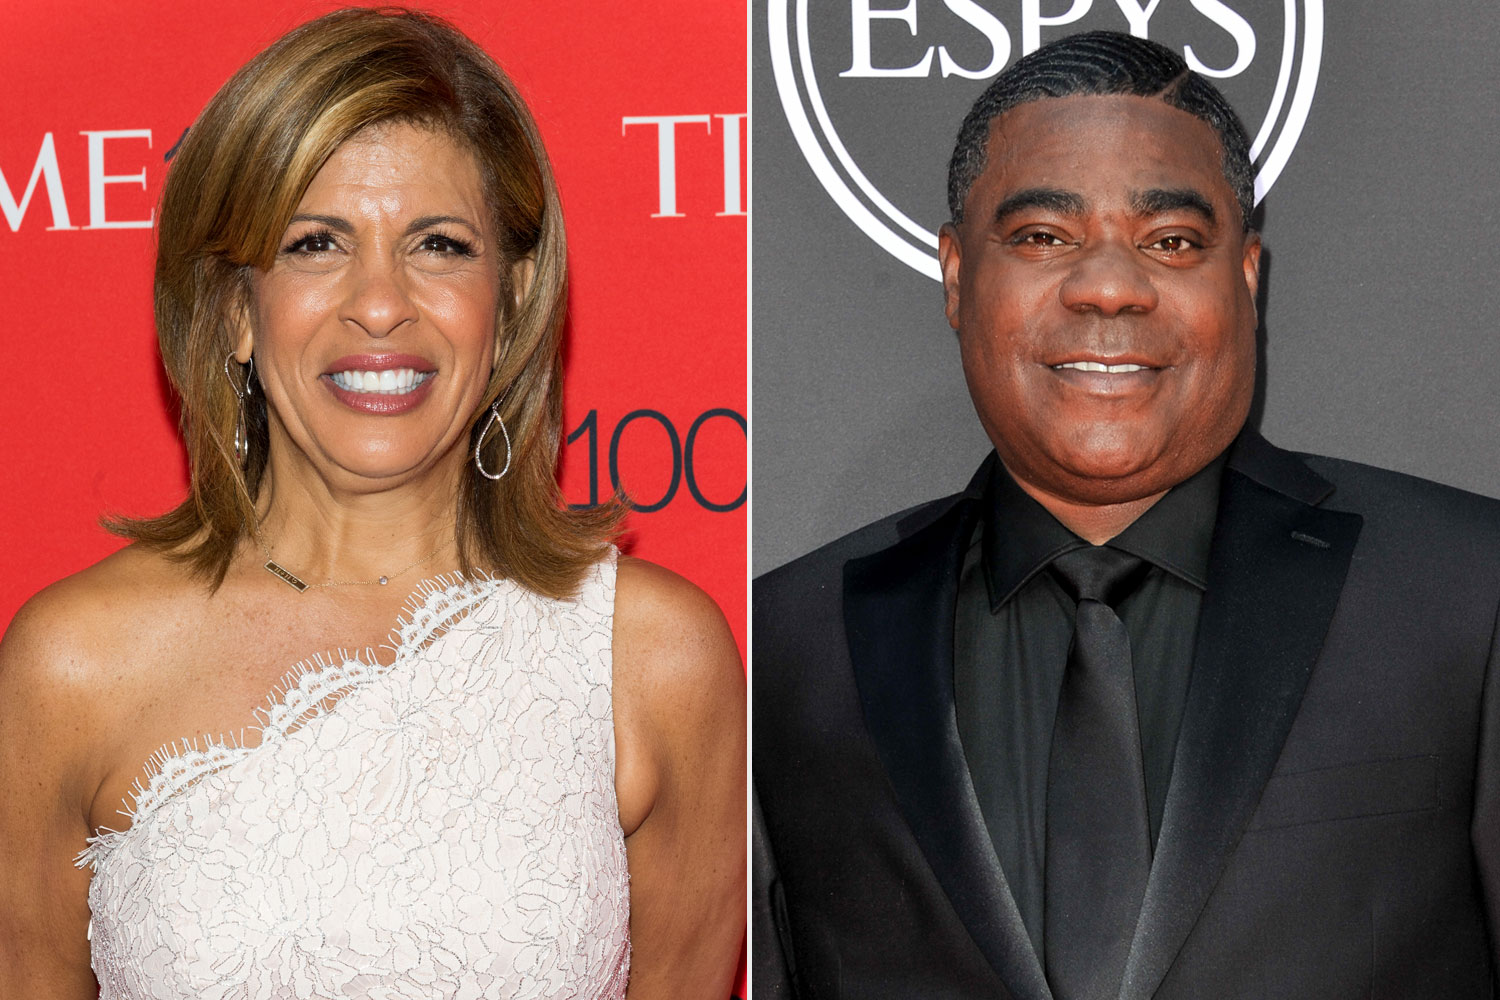 Hoda Kotb, Tracy Morgan